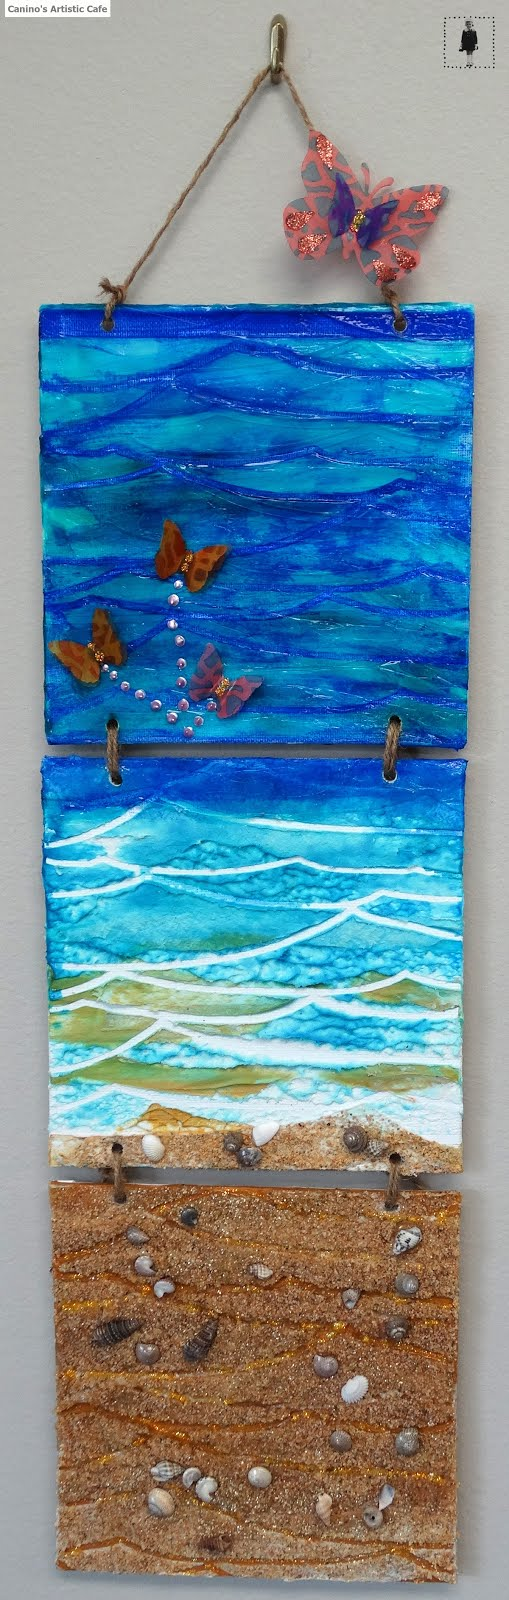 Jun2016 StencilClub - Stenciled Mixed Media Wall Hanging - Sherry Canino